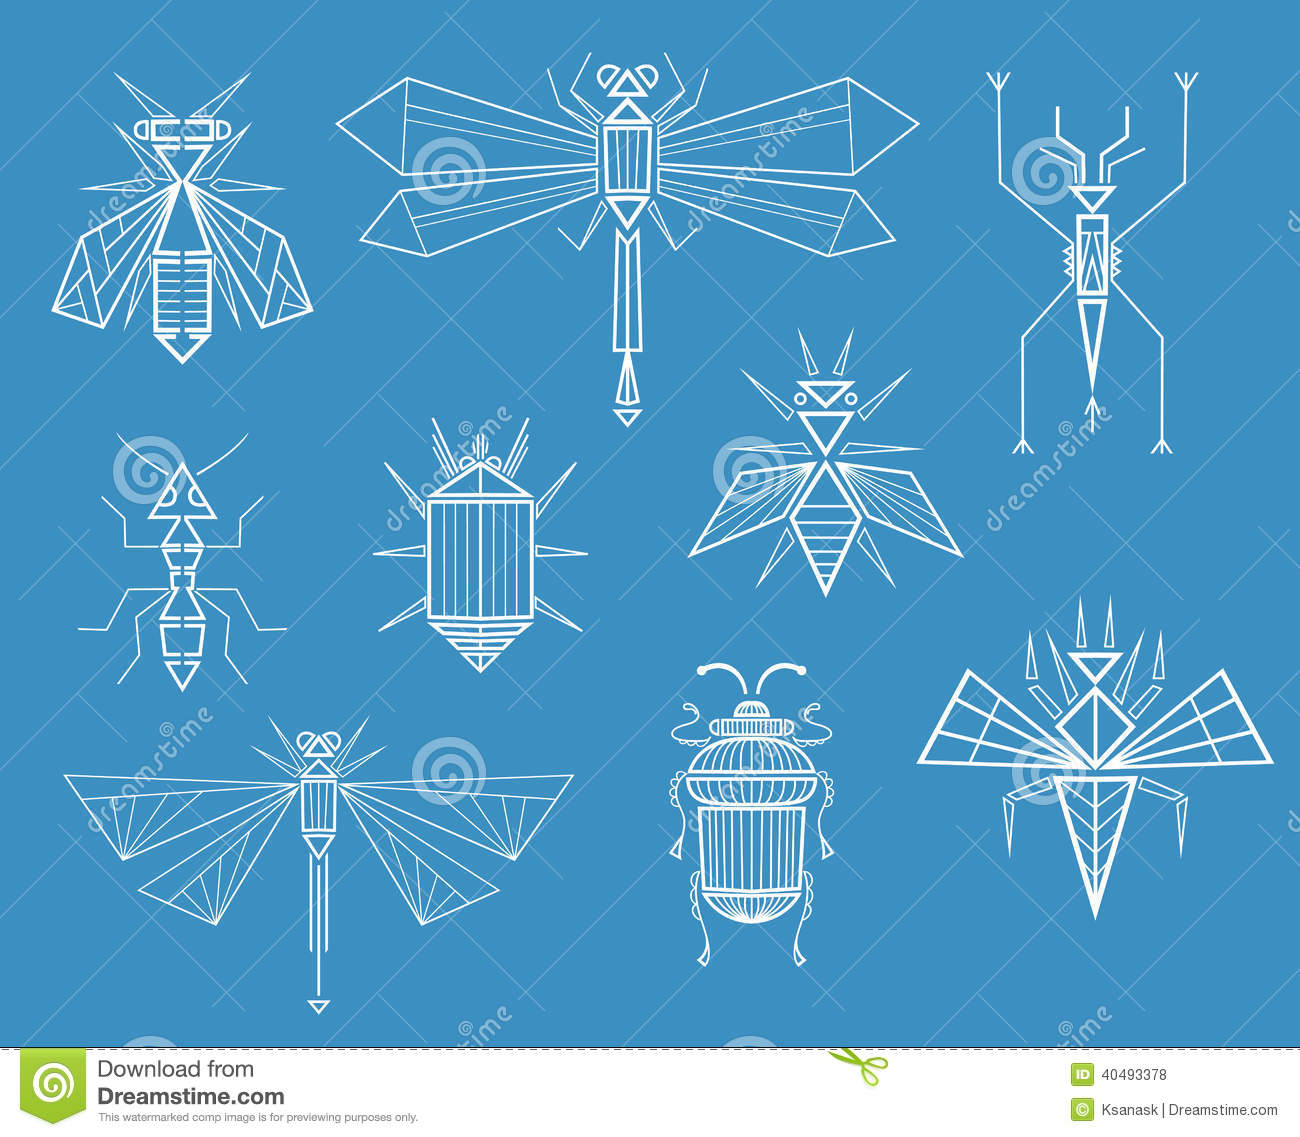 Line Art Design Geometry : Geometric insects stock vector illustration of eps